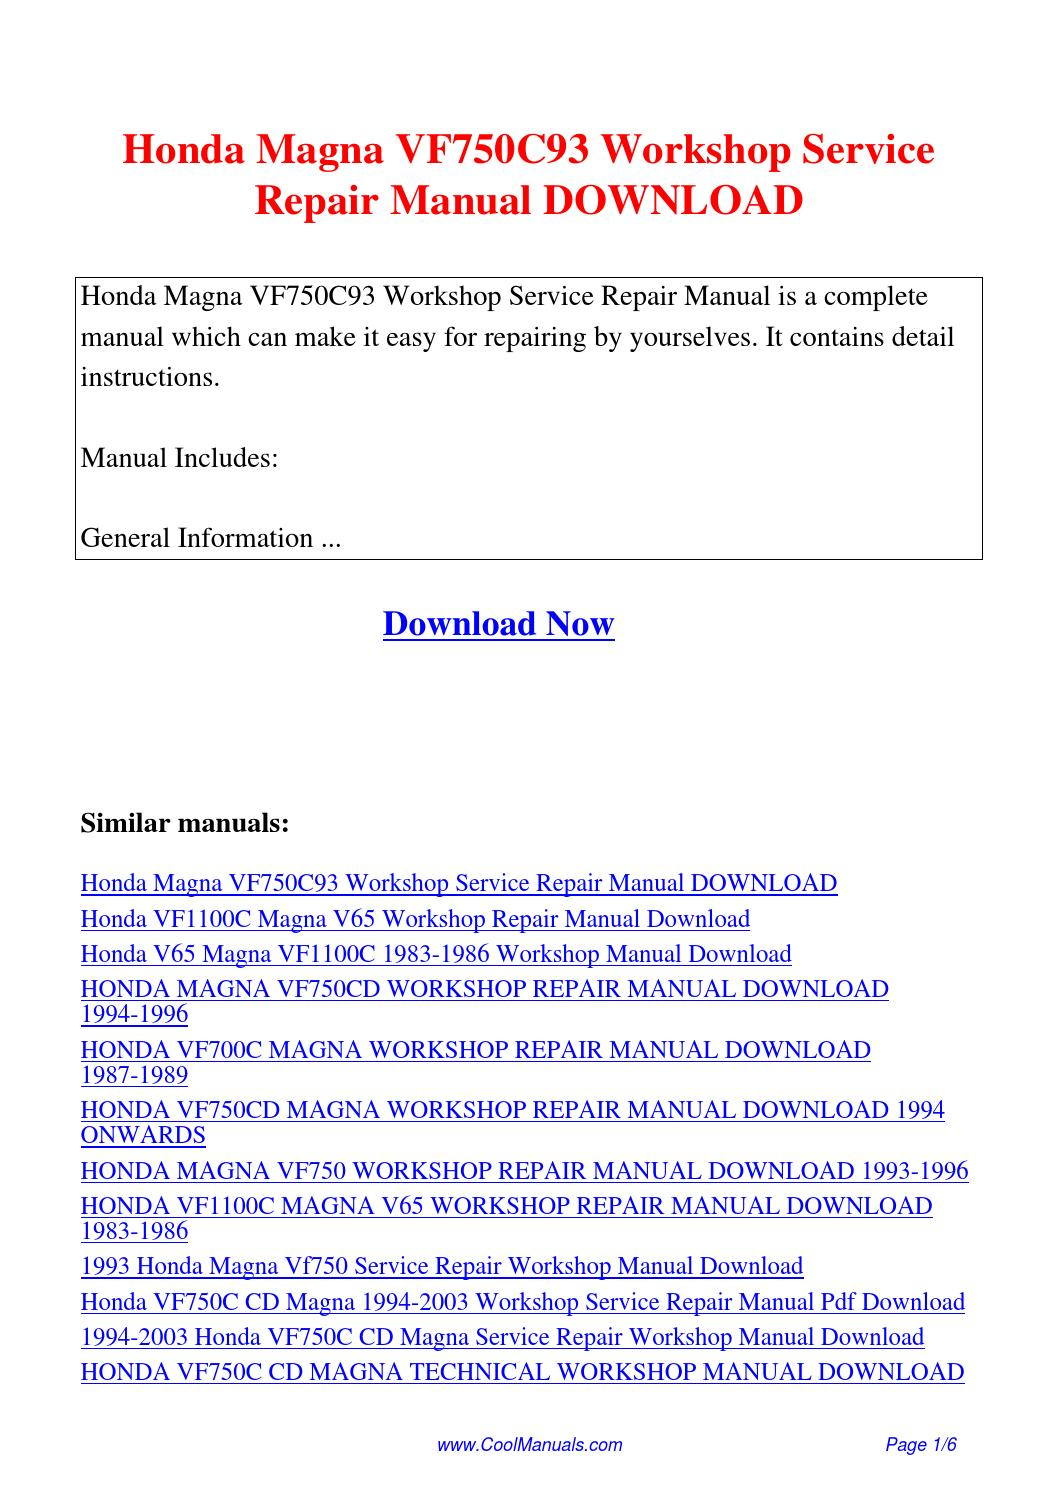 Honda Magna VF750C93 Workshop Service Repair Manual.pdf by Linda Pong -  issuu